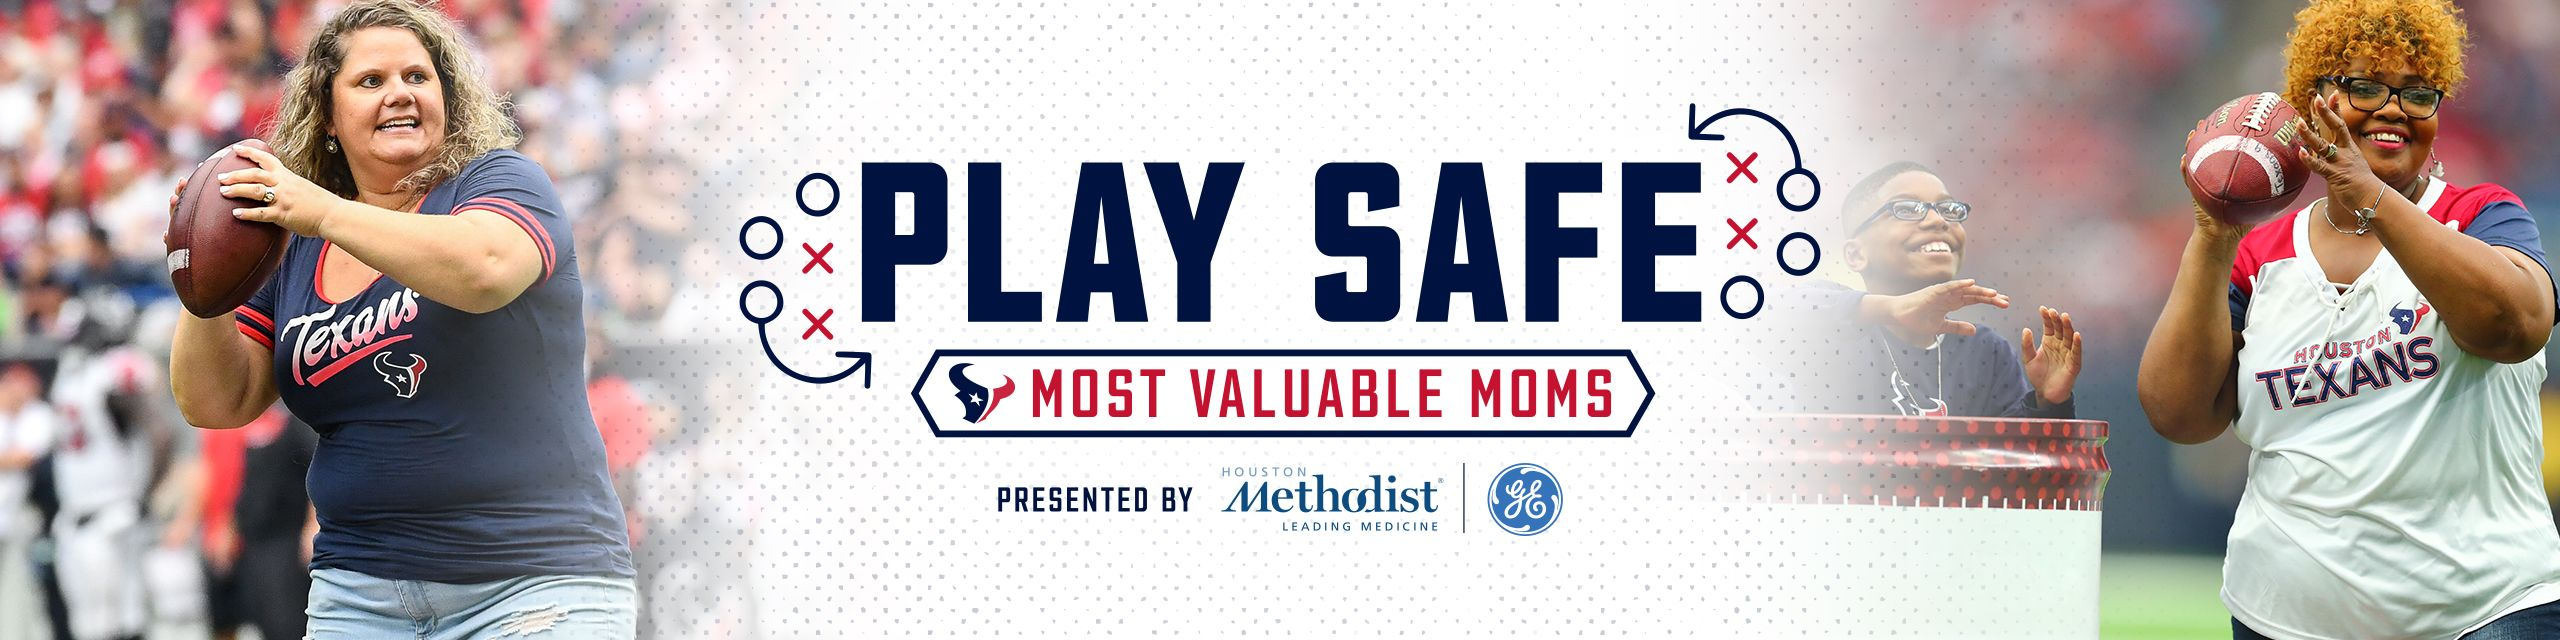 Play Safe - Most Valuable Mom presented by Houston Methodist and GE